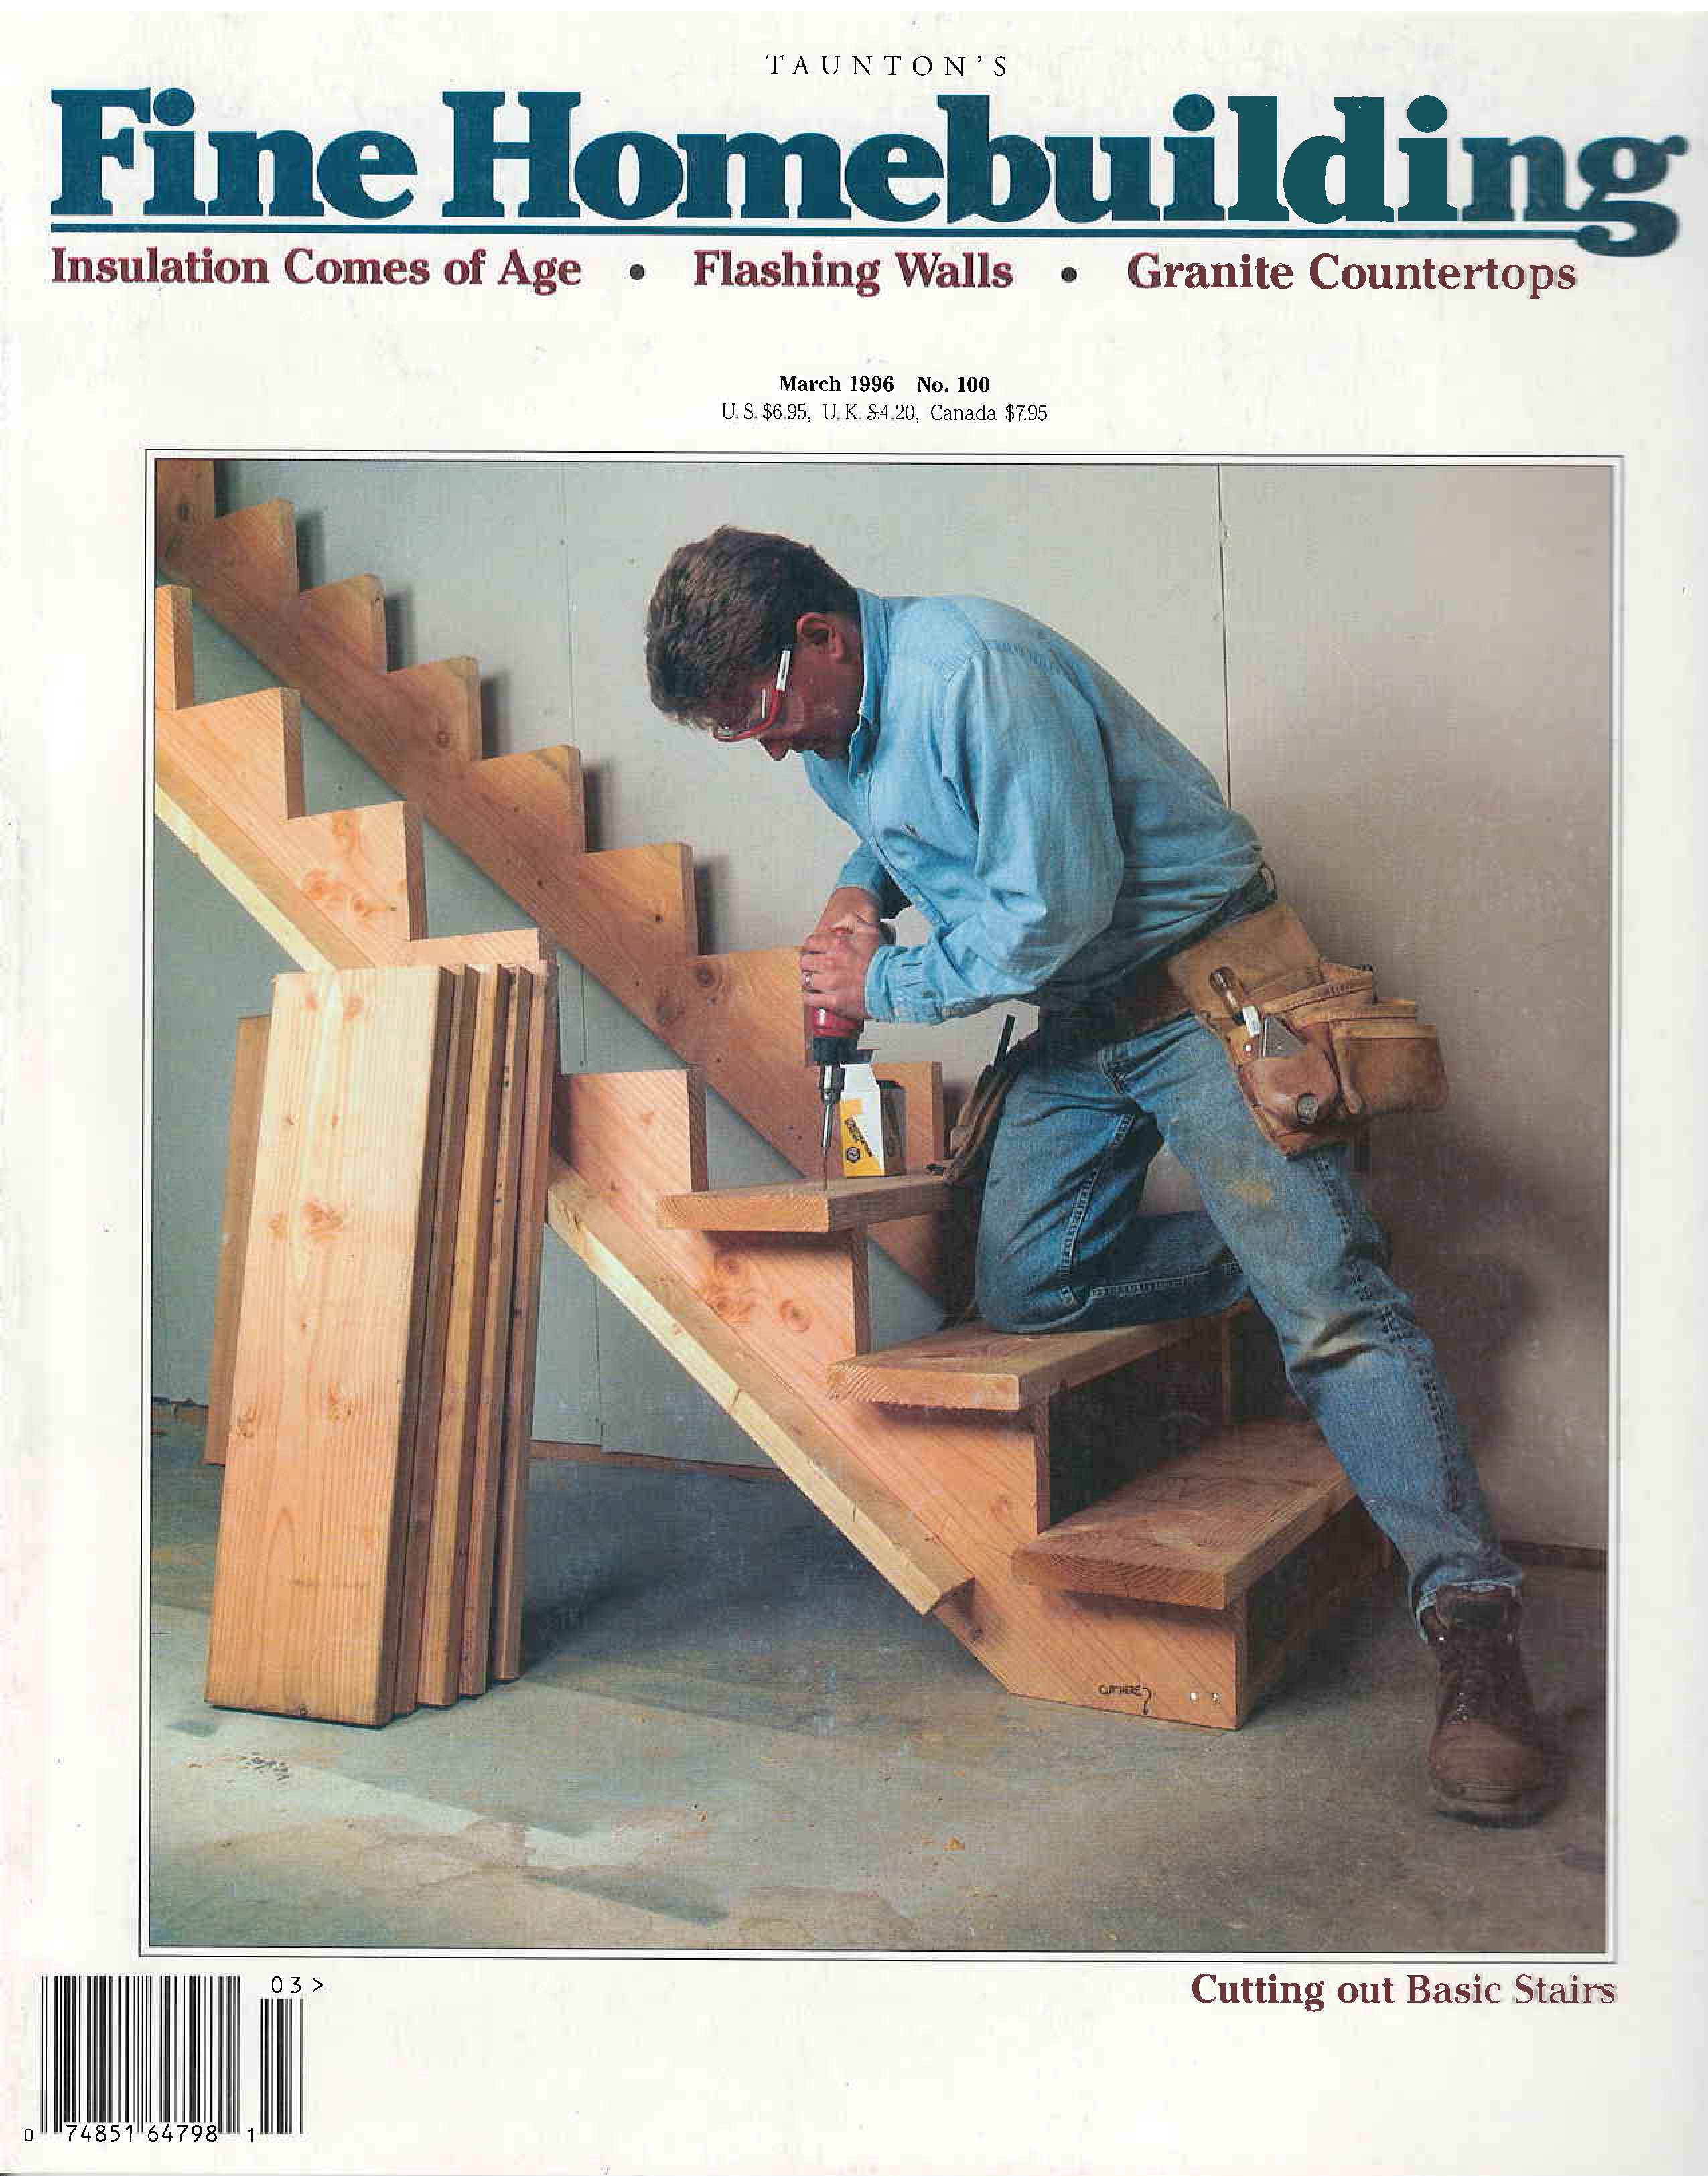 Fine Homebuilding, March 1996